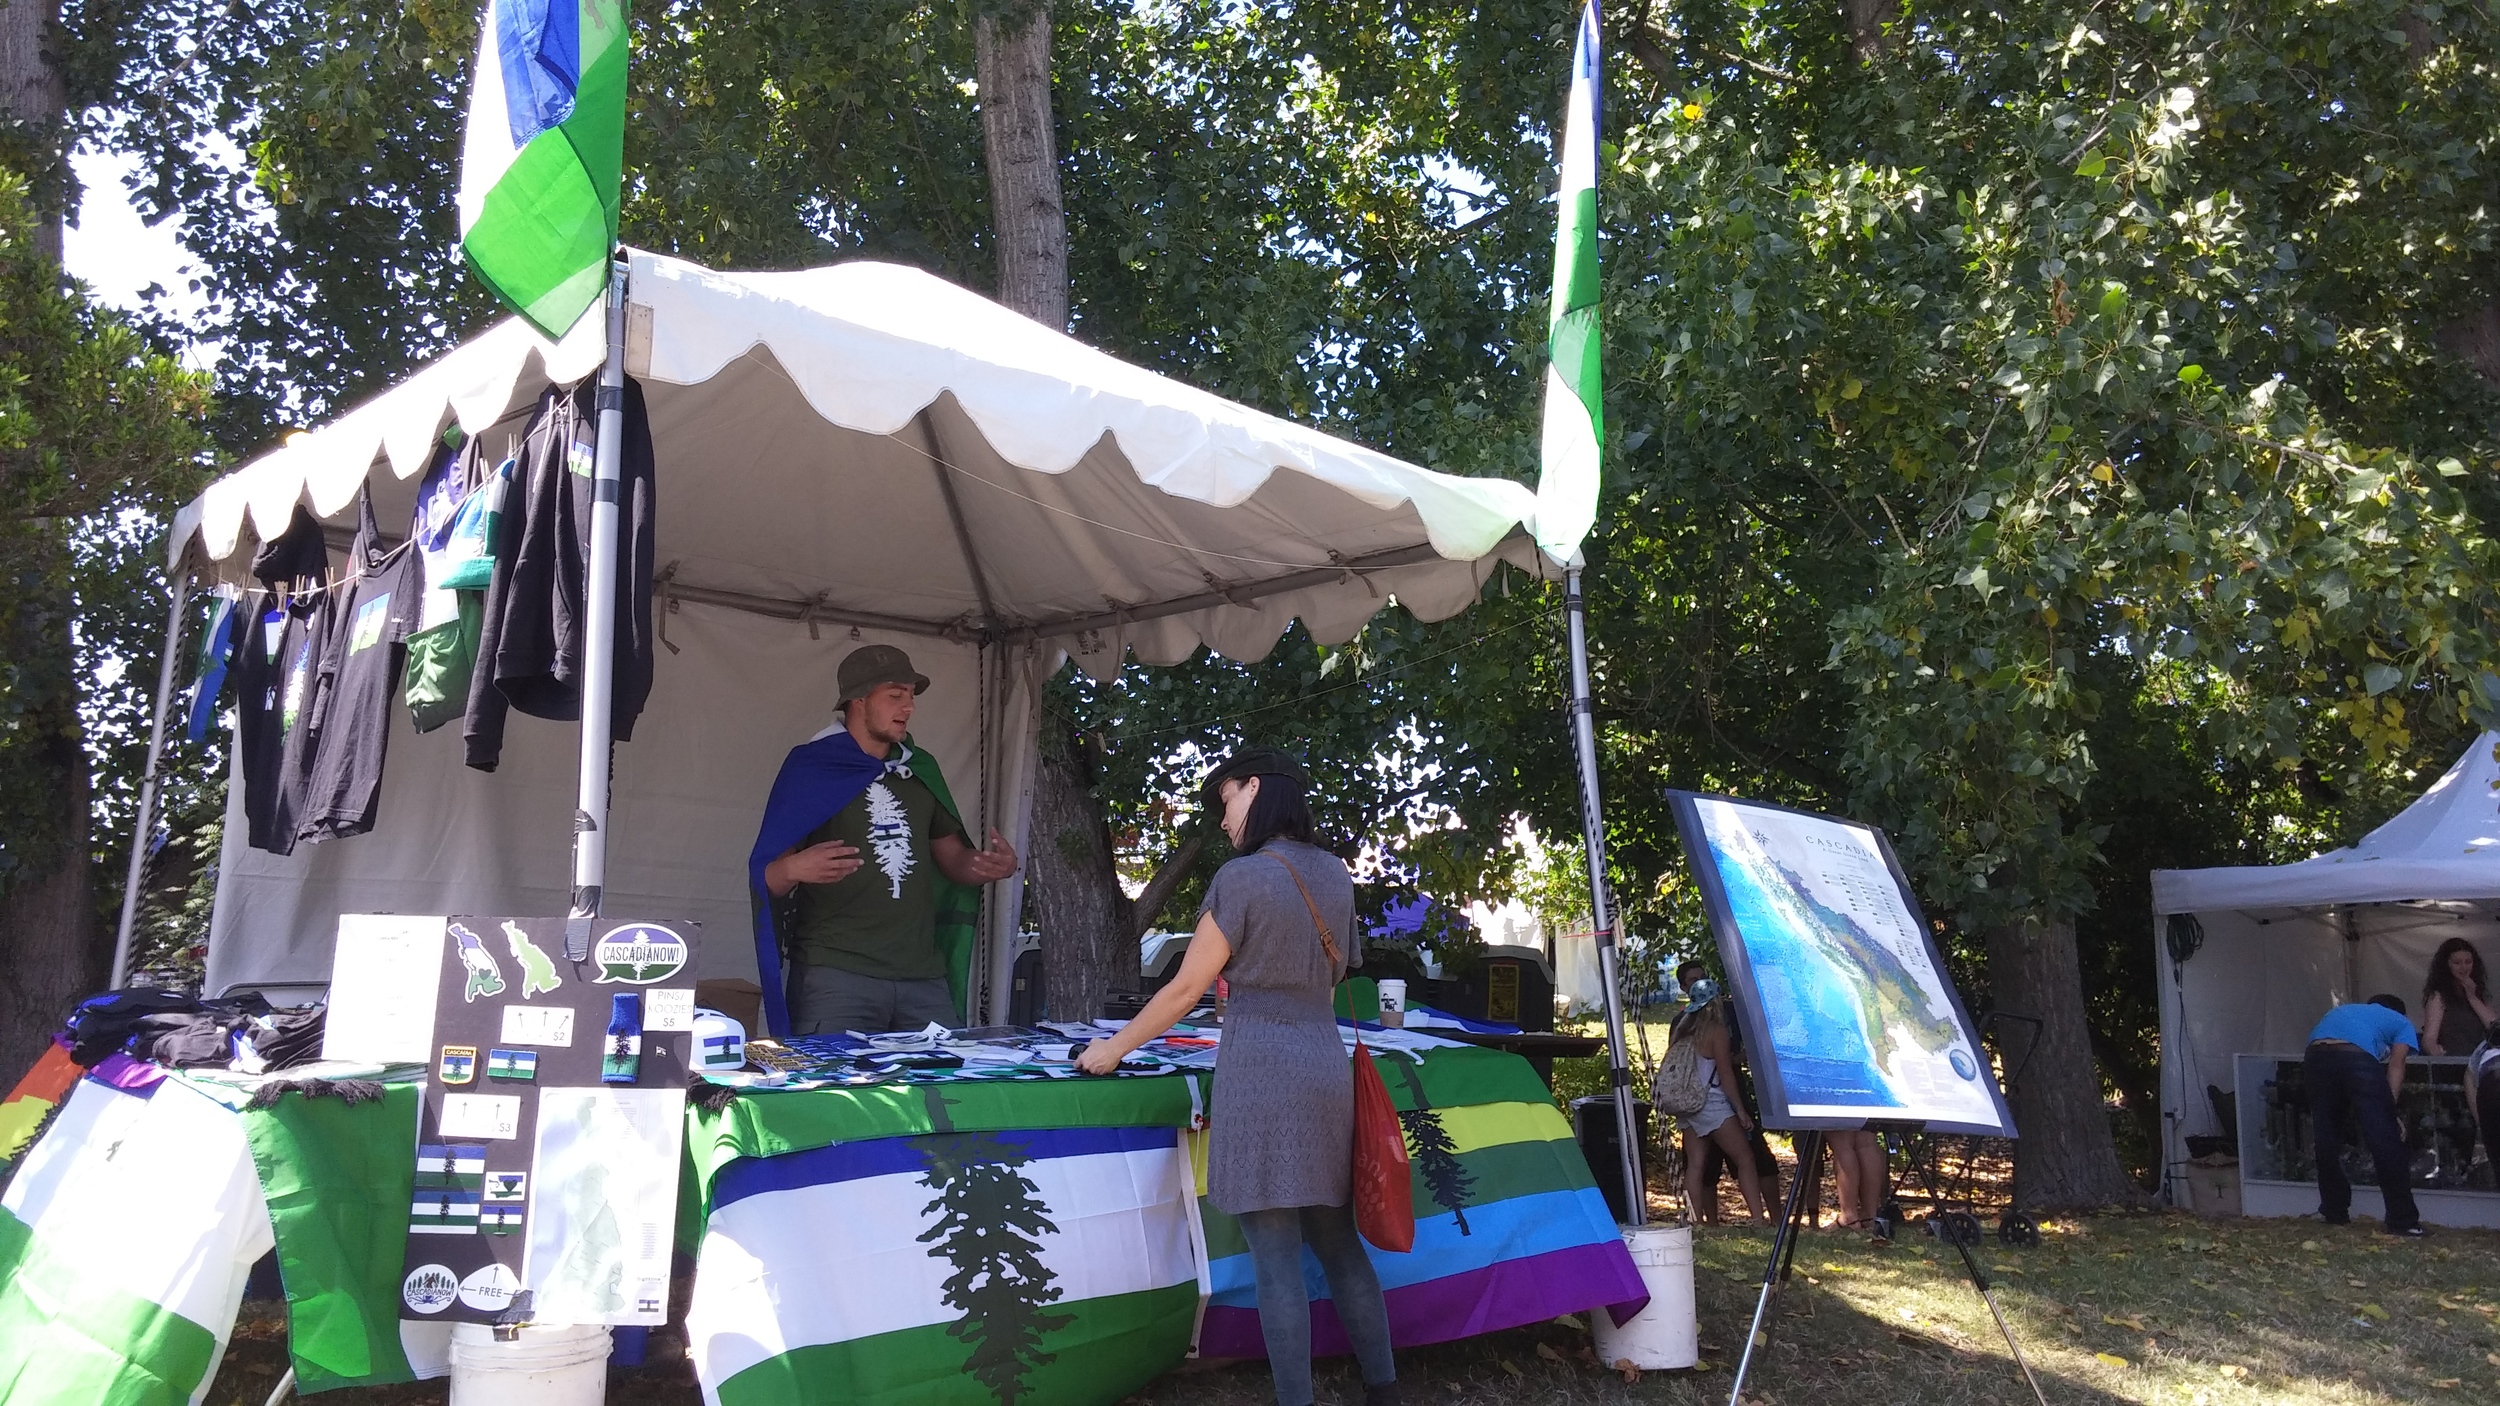 CascadiaNow at Hempfest 2015